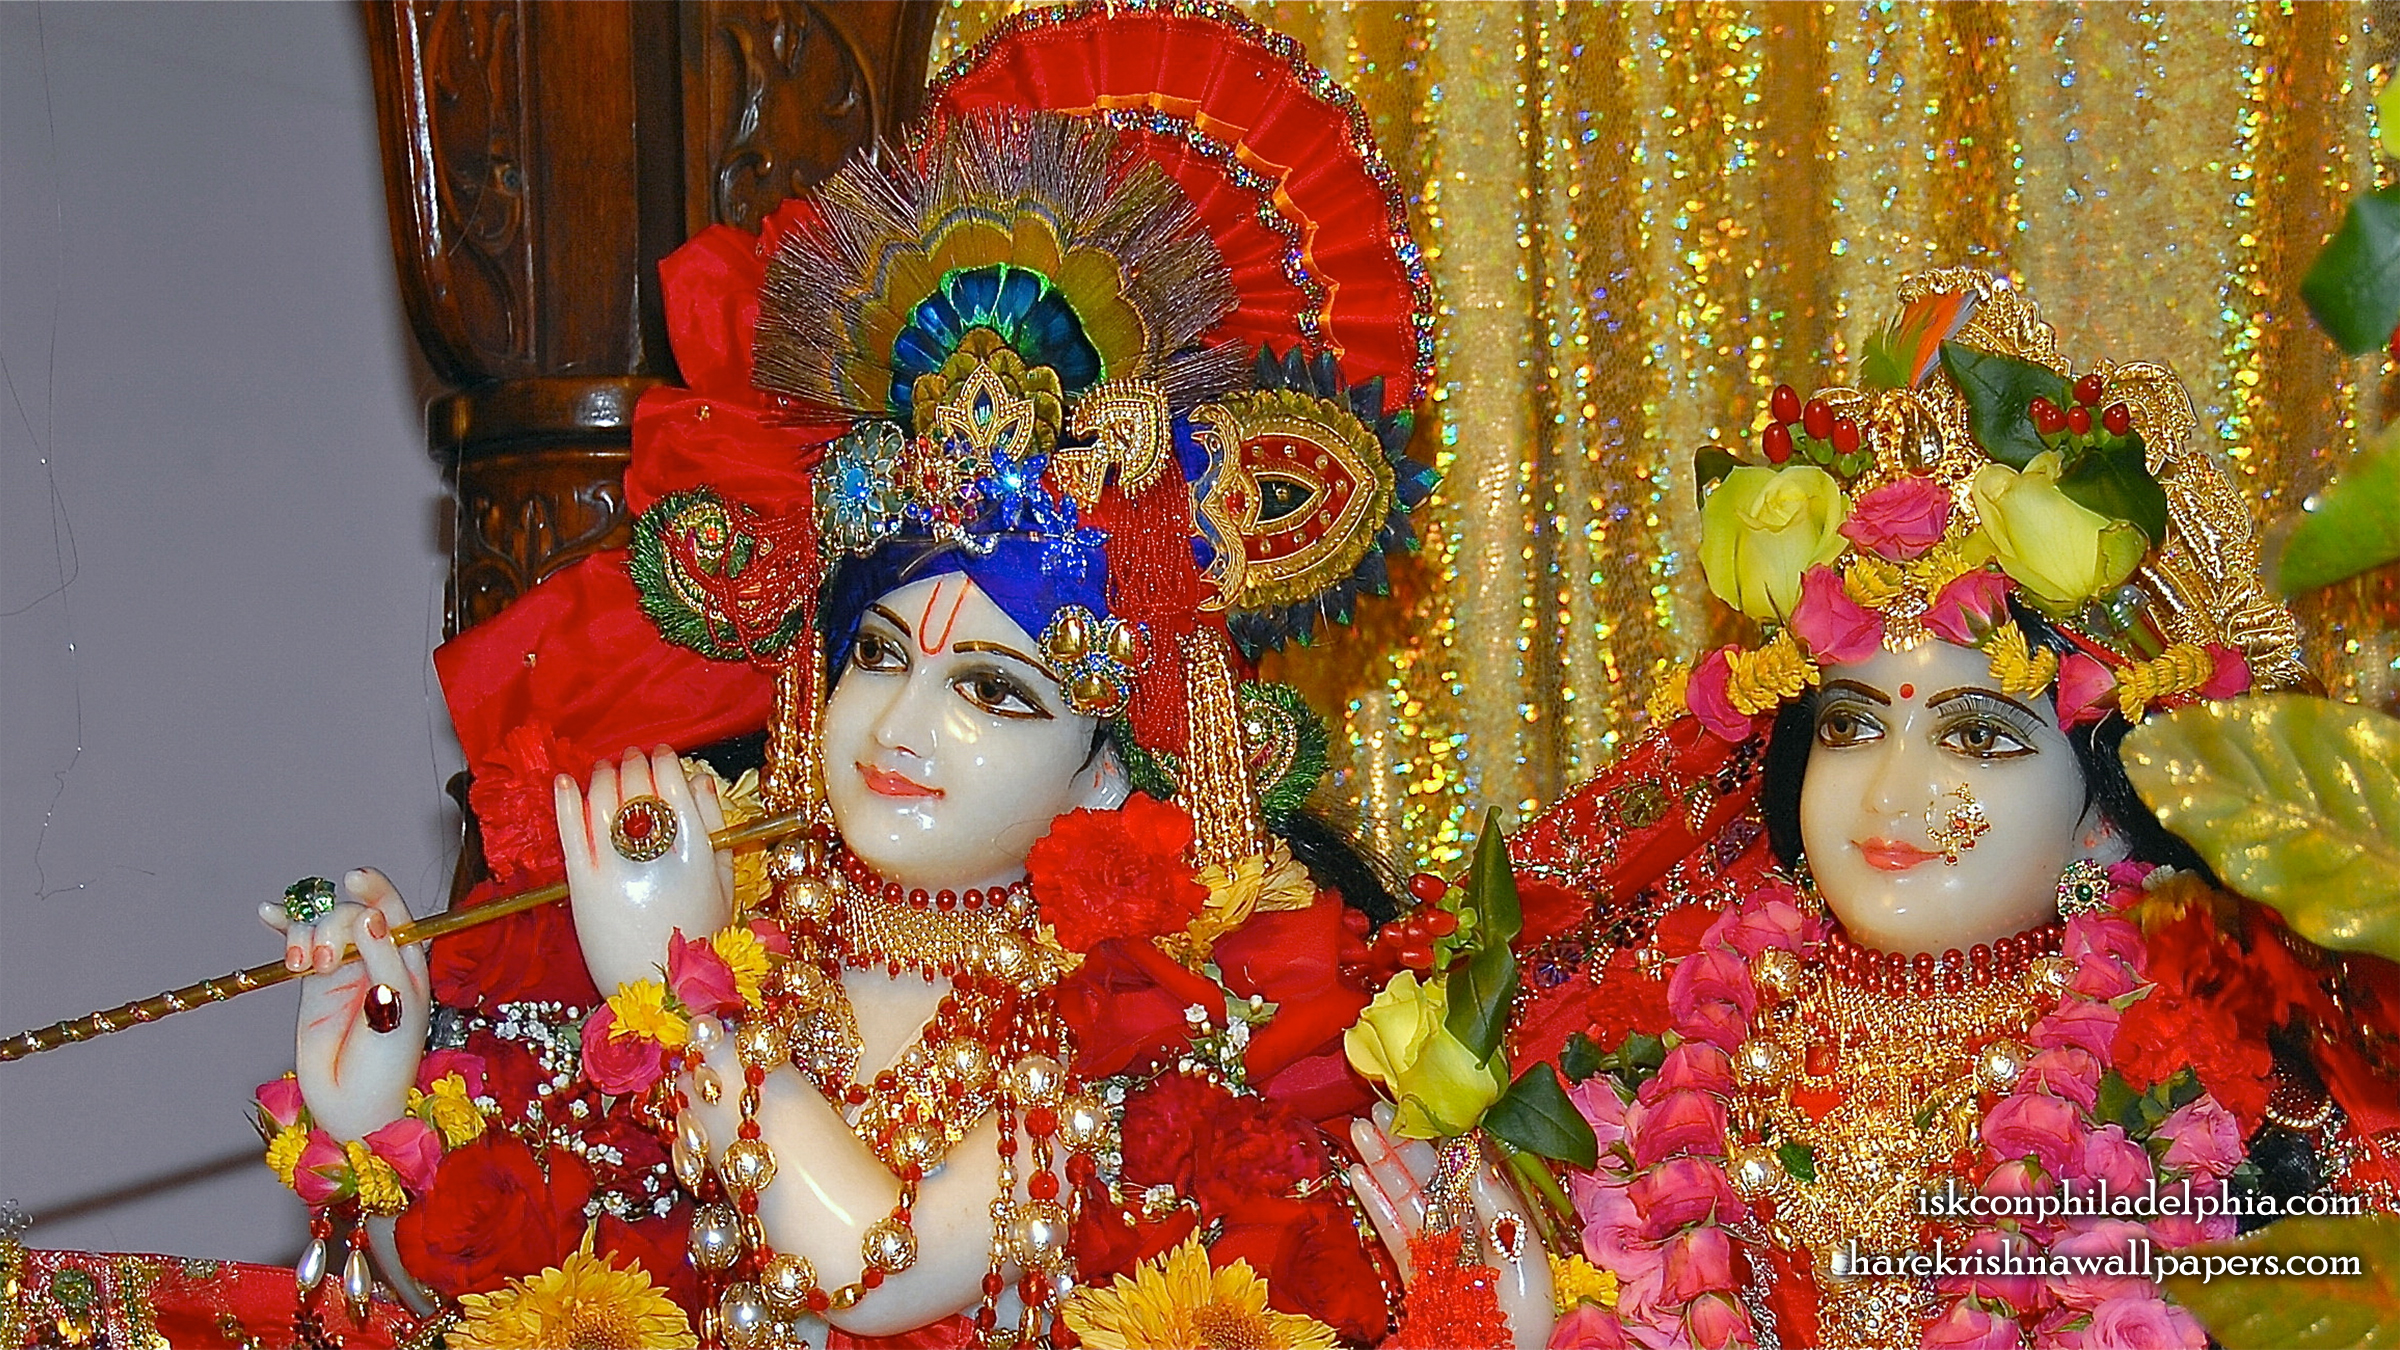 Sri Sri Radha Krishna Close up Wallpaper (009) Size 2400x1350 Download